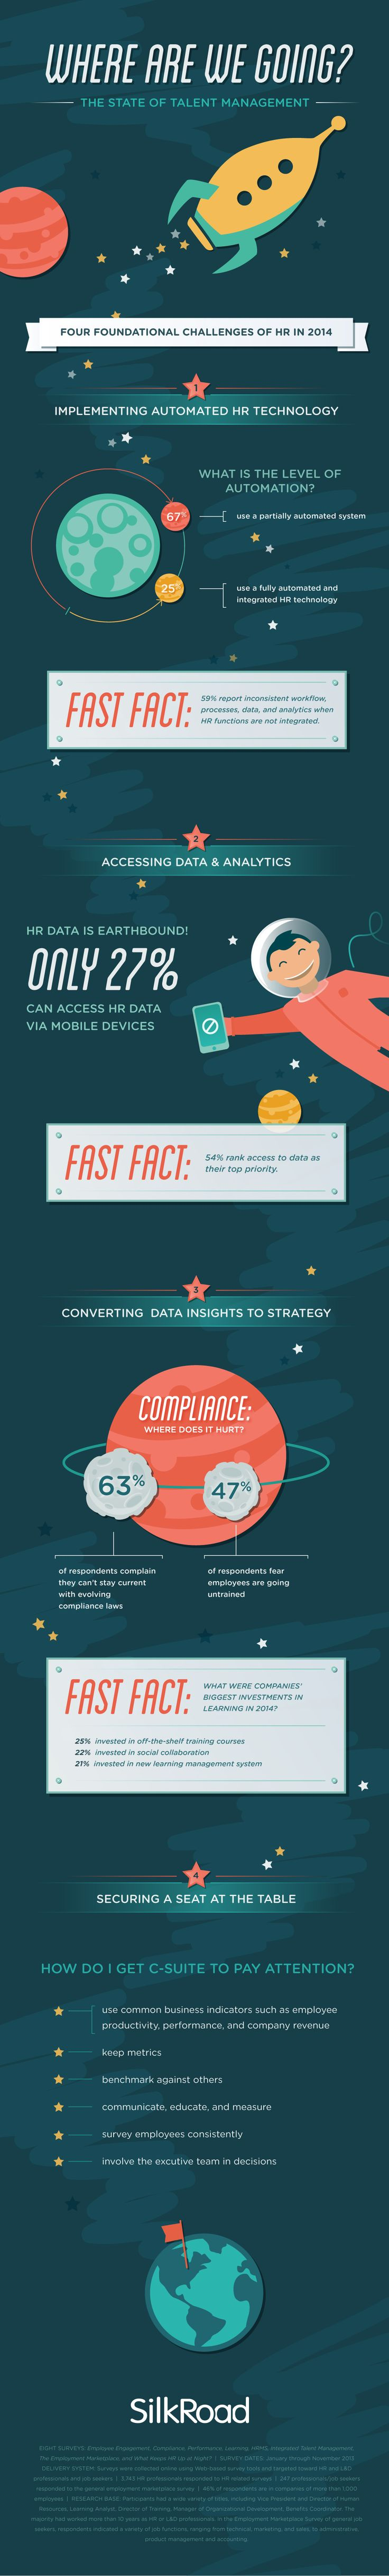 Talent management: The 4 big challenges for #HR #INFOGRAPHIC #HRMS